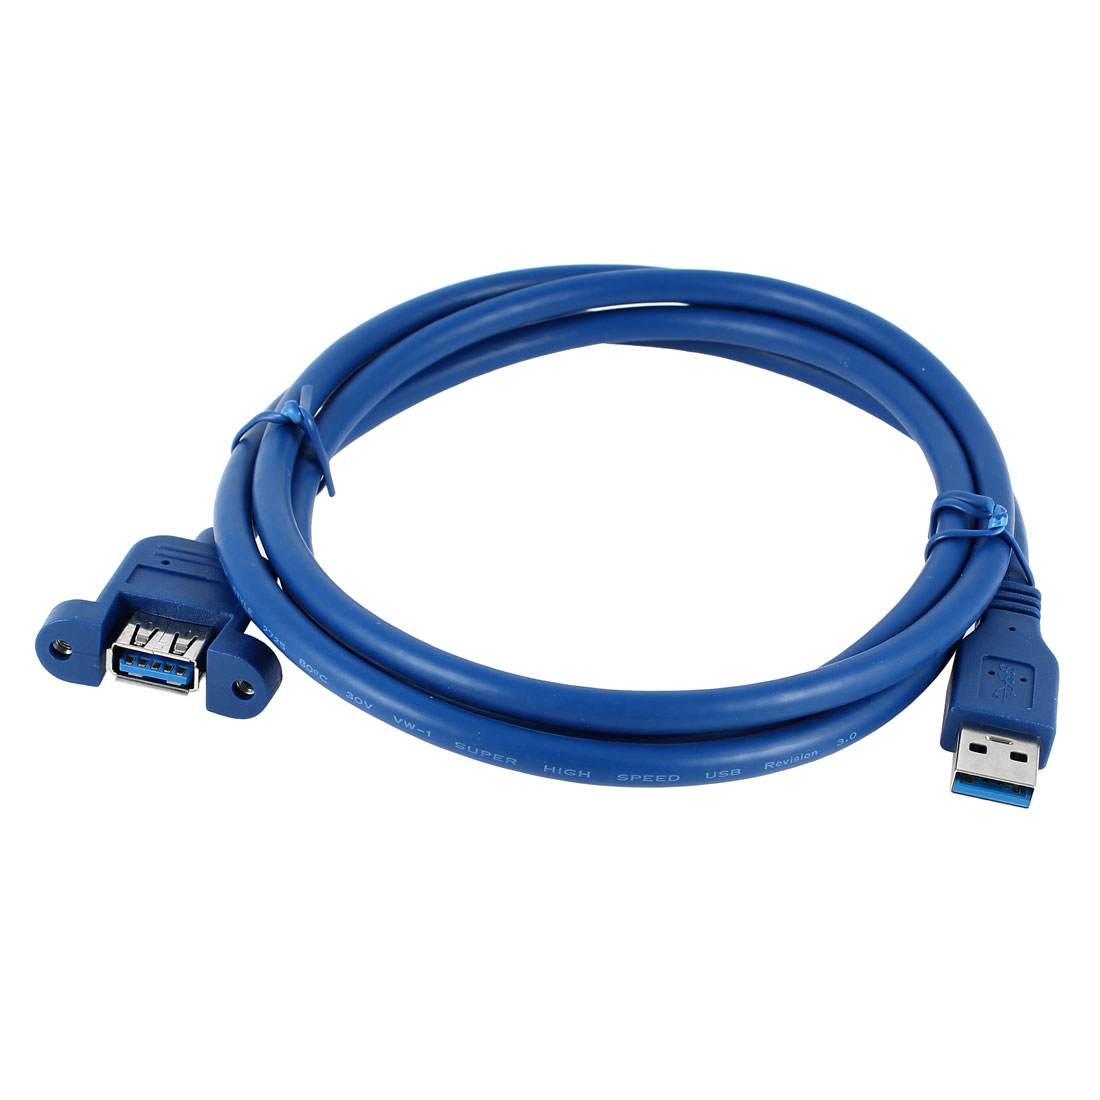 Blue 1.5M USB 3.0 A Male to A Female Nut Hole Extension Cable